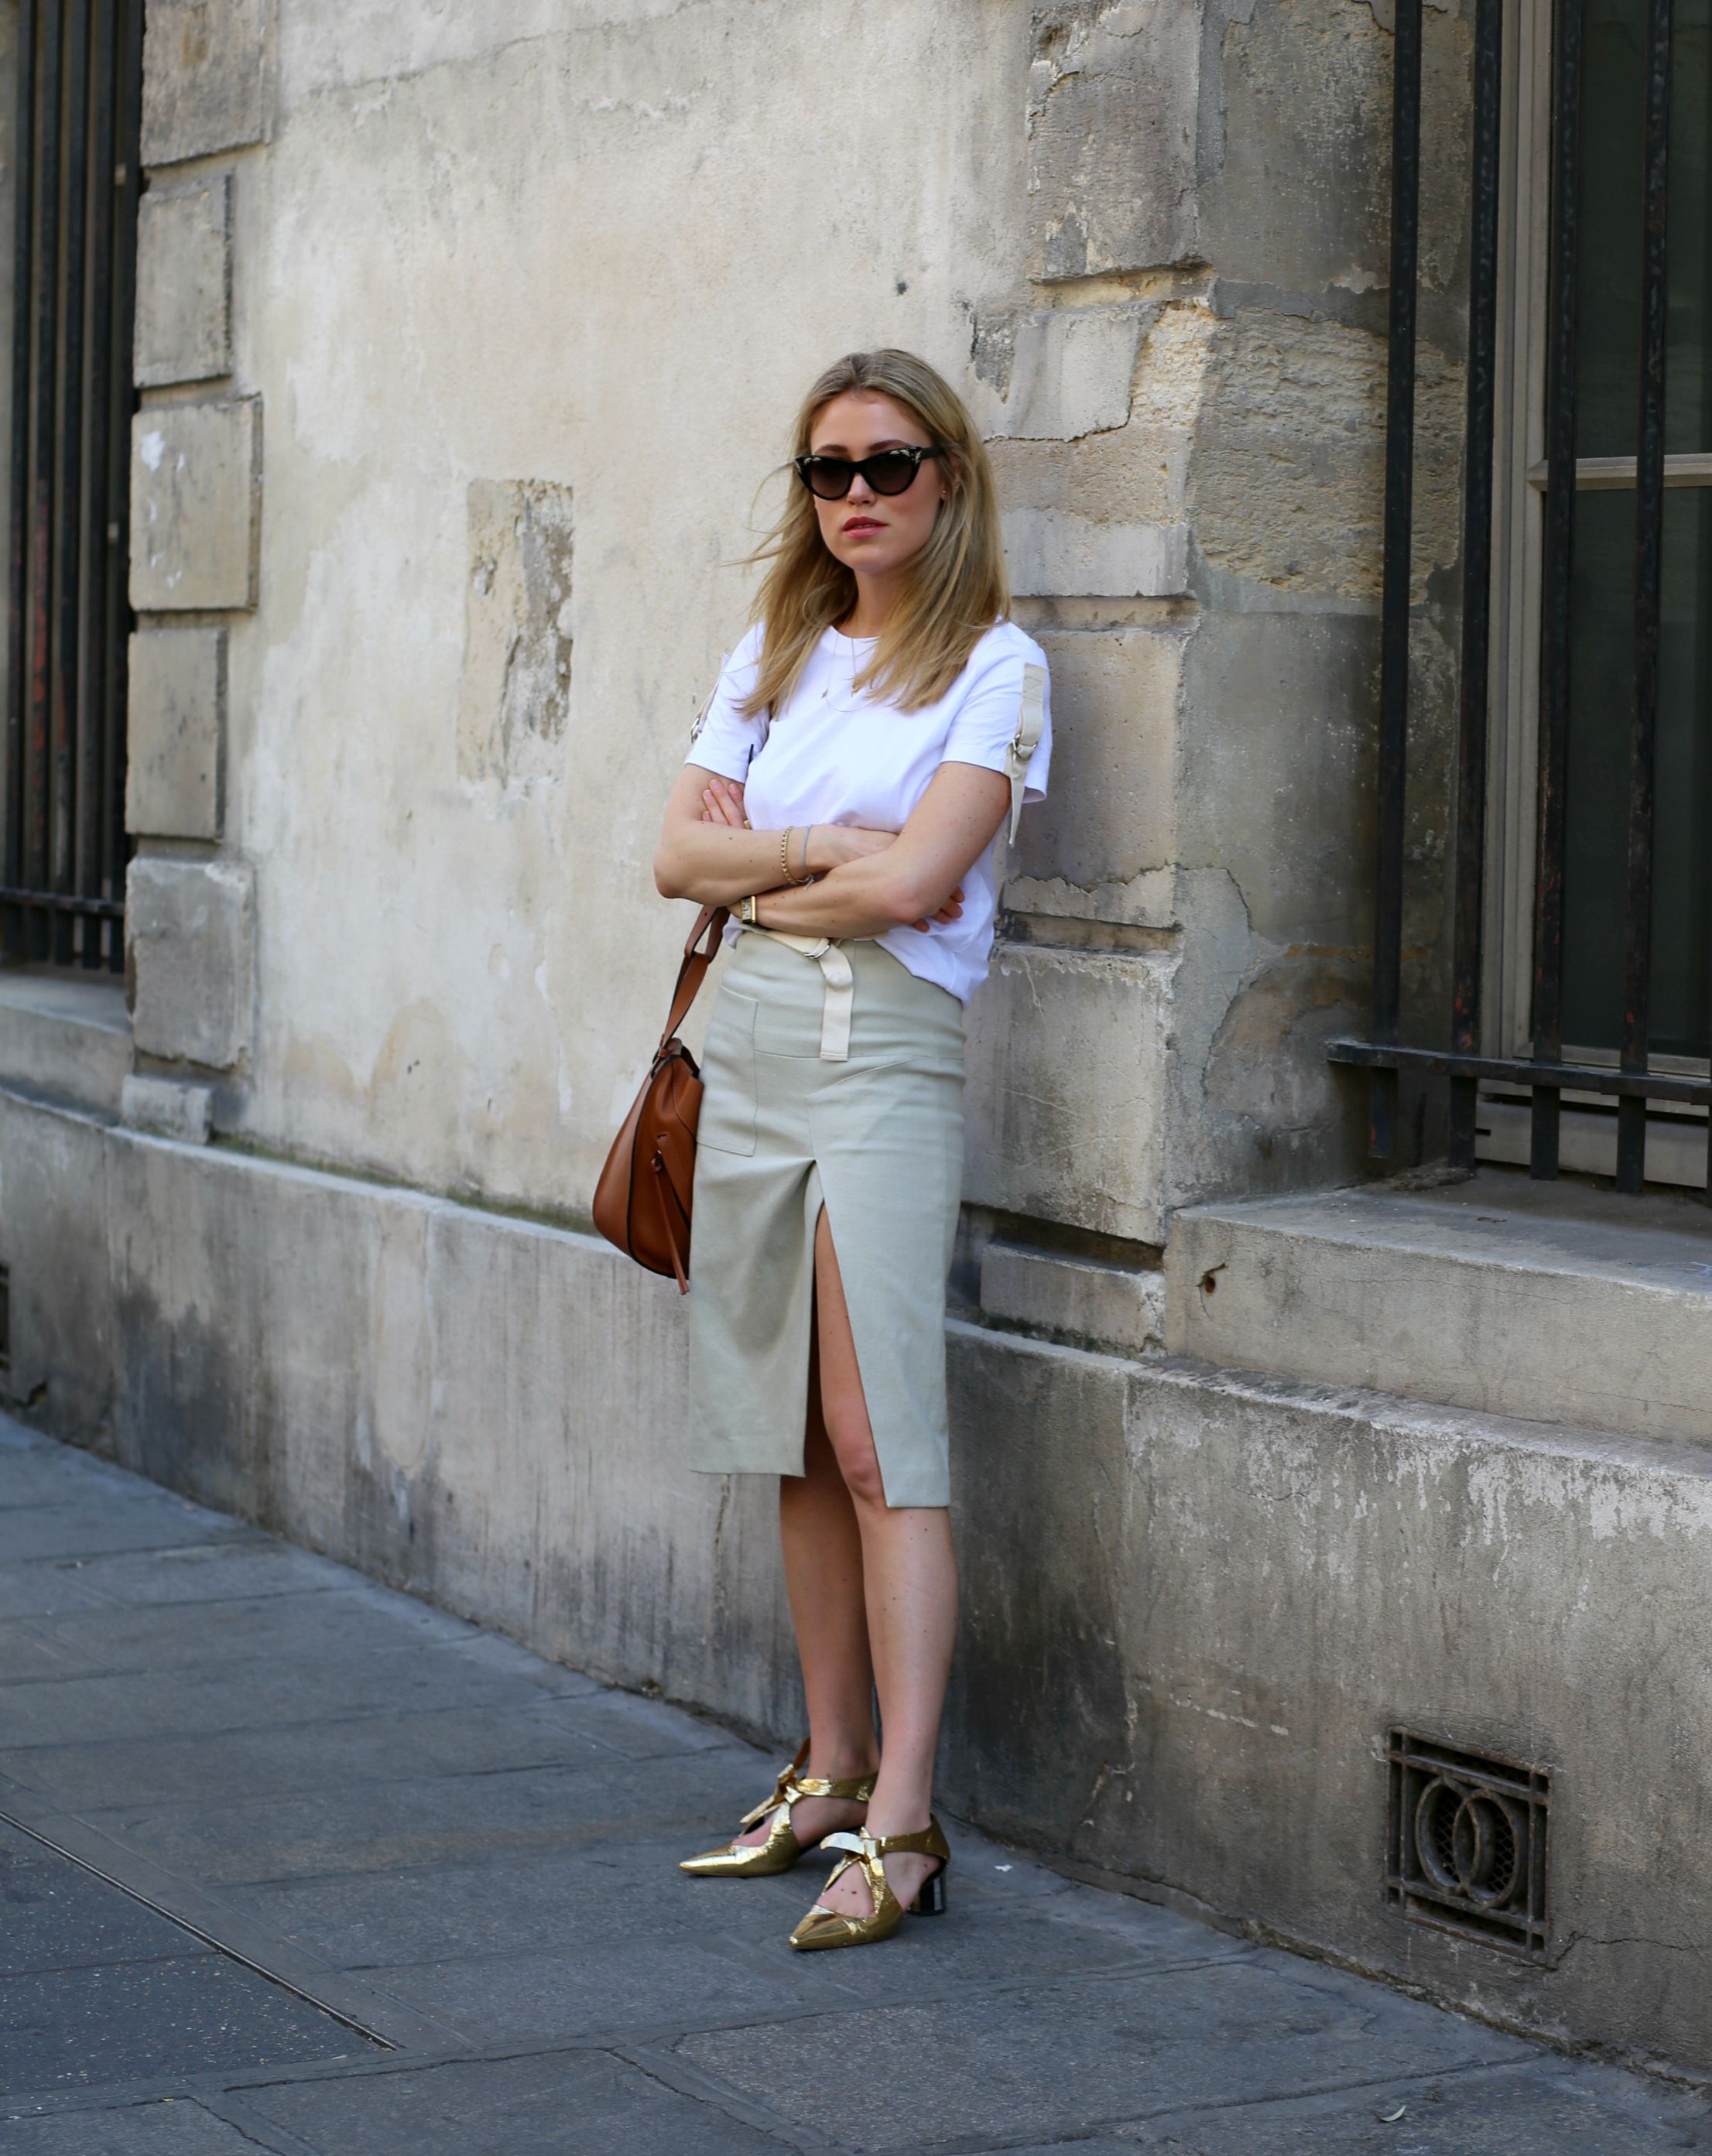 Streets of Paris | Annabel